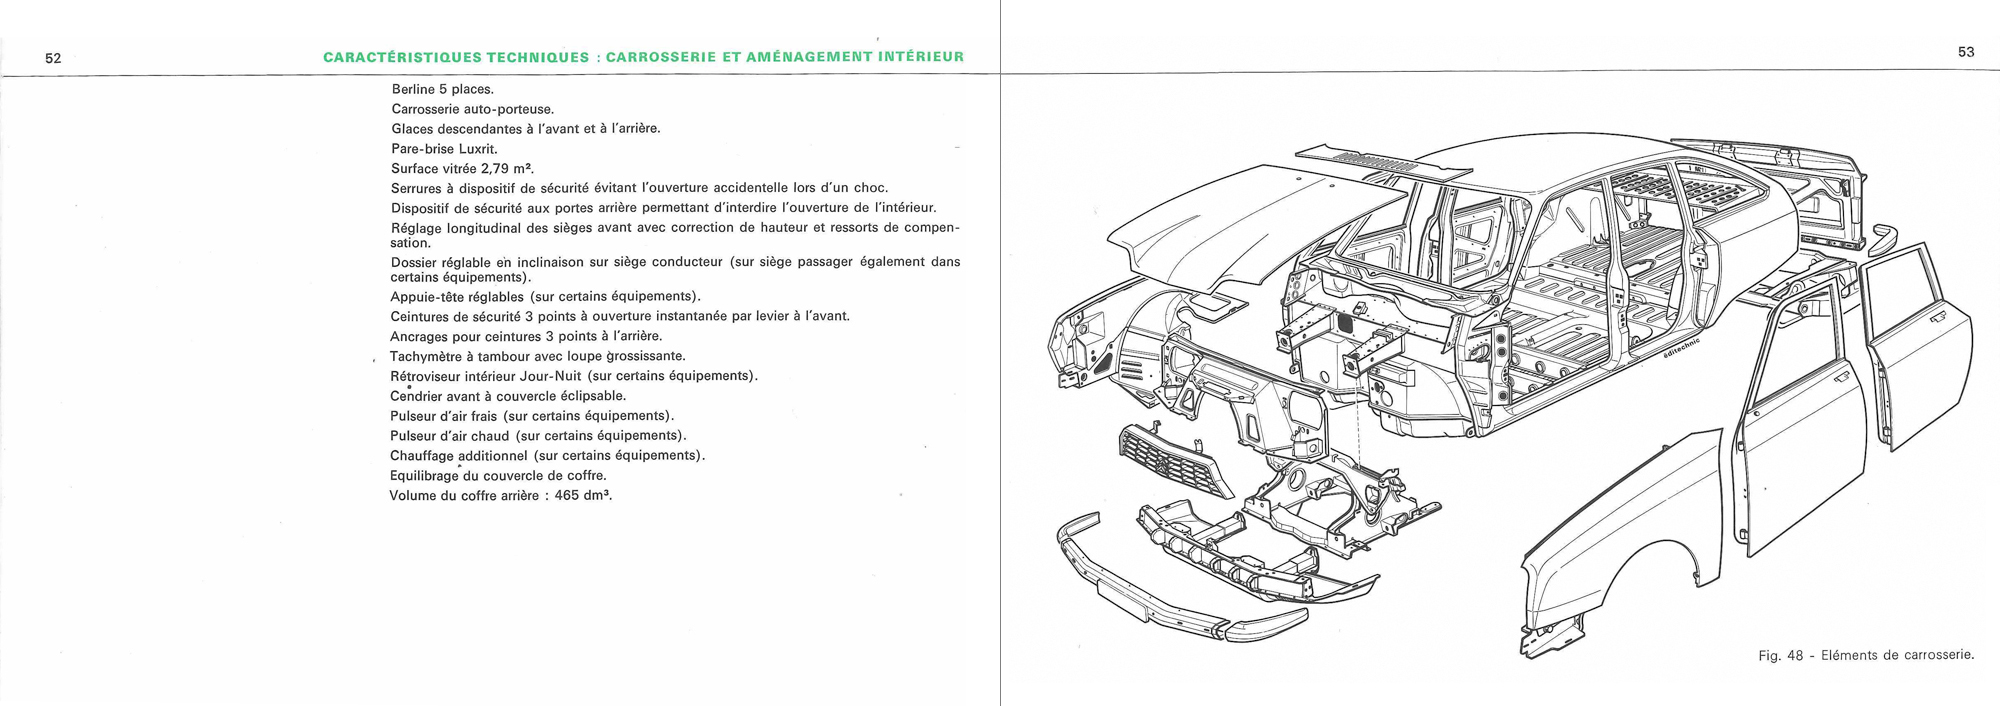 1970 Citroën GS Notice d'emploi (owner's manual) #2